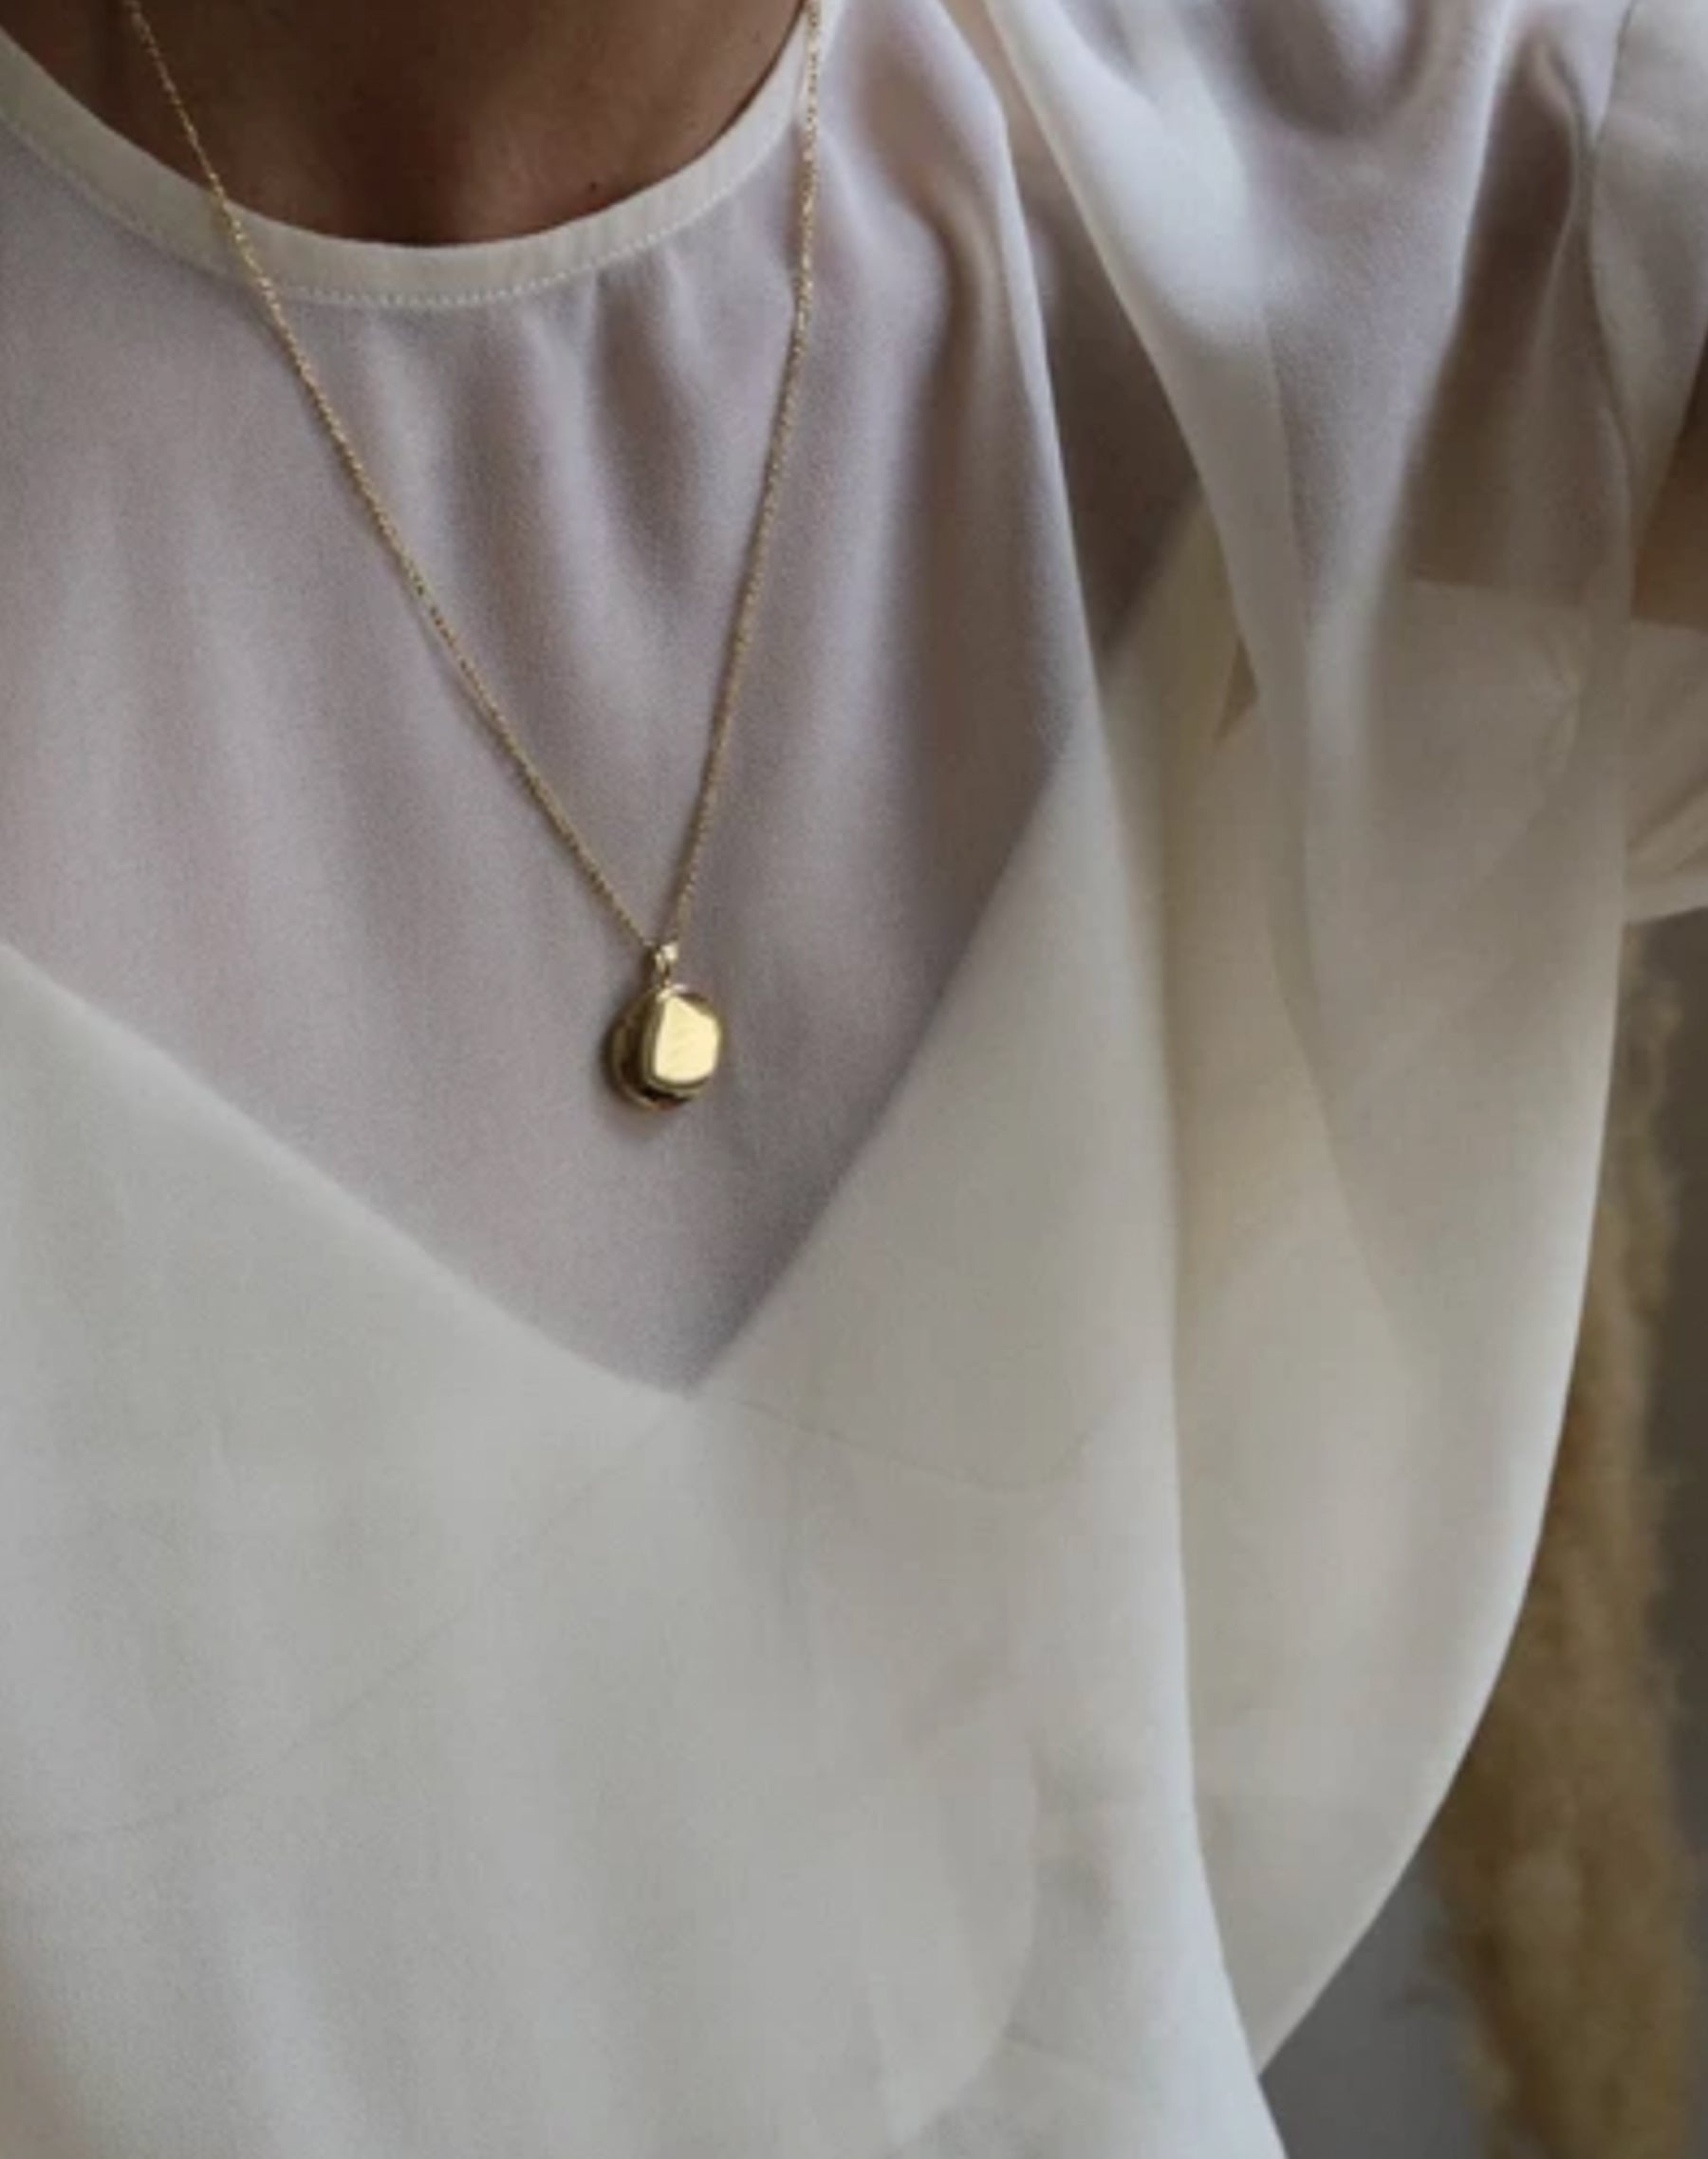 Image of a model wearing the Round Locket in gold by Lisbeth.